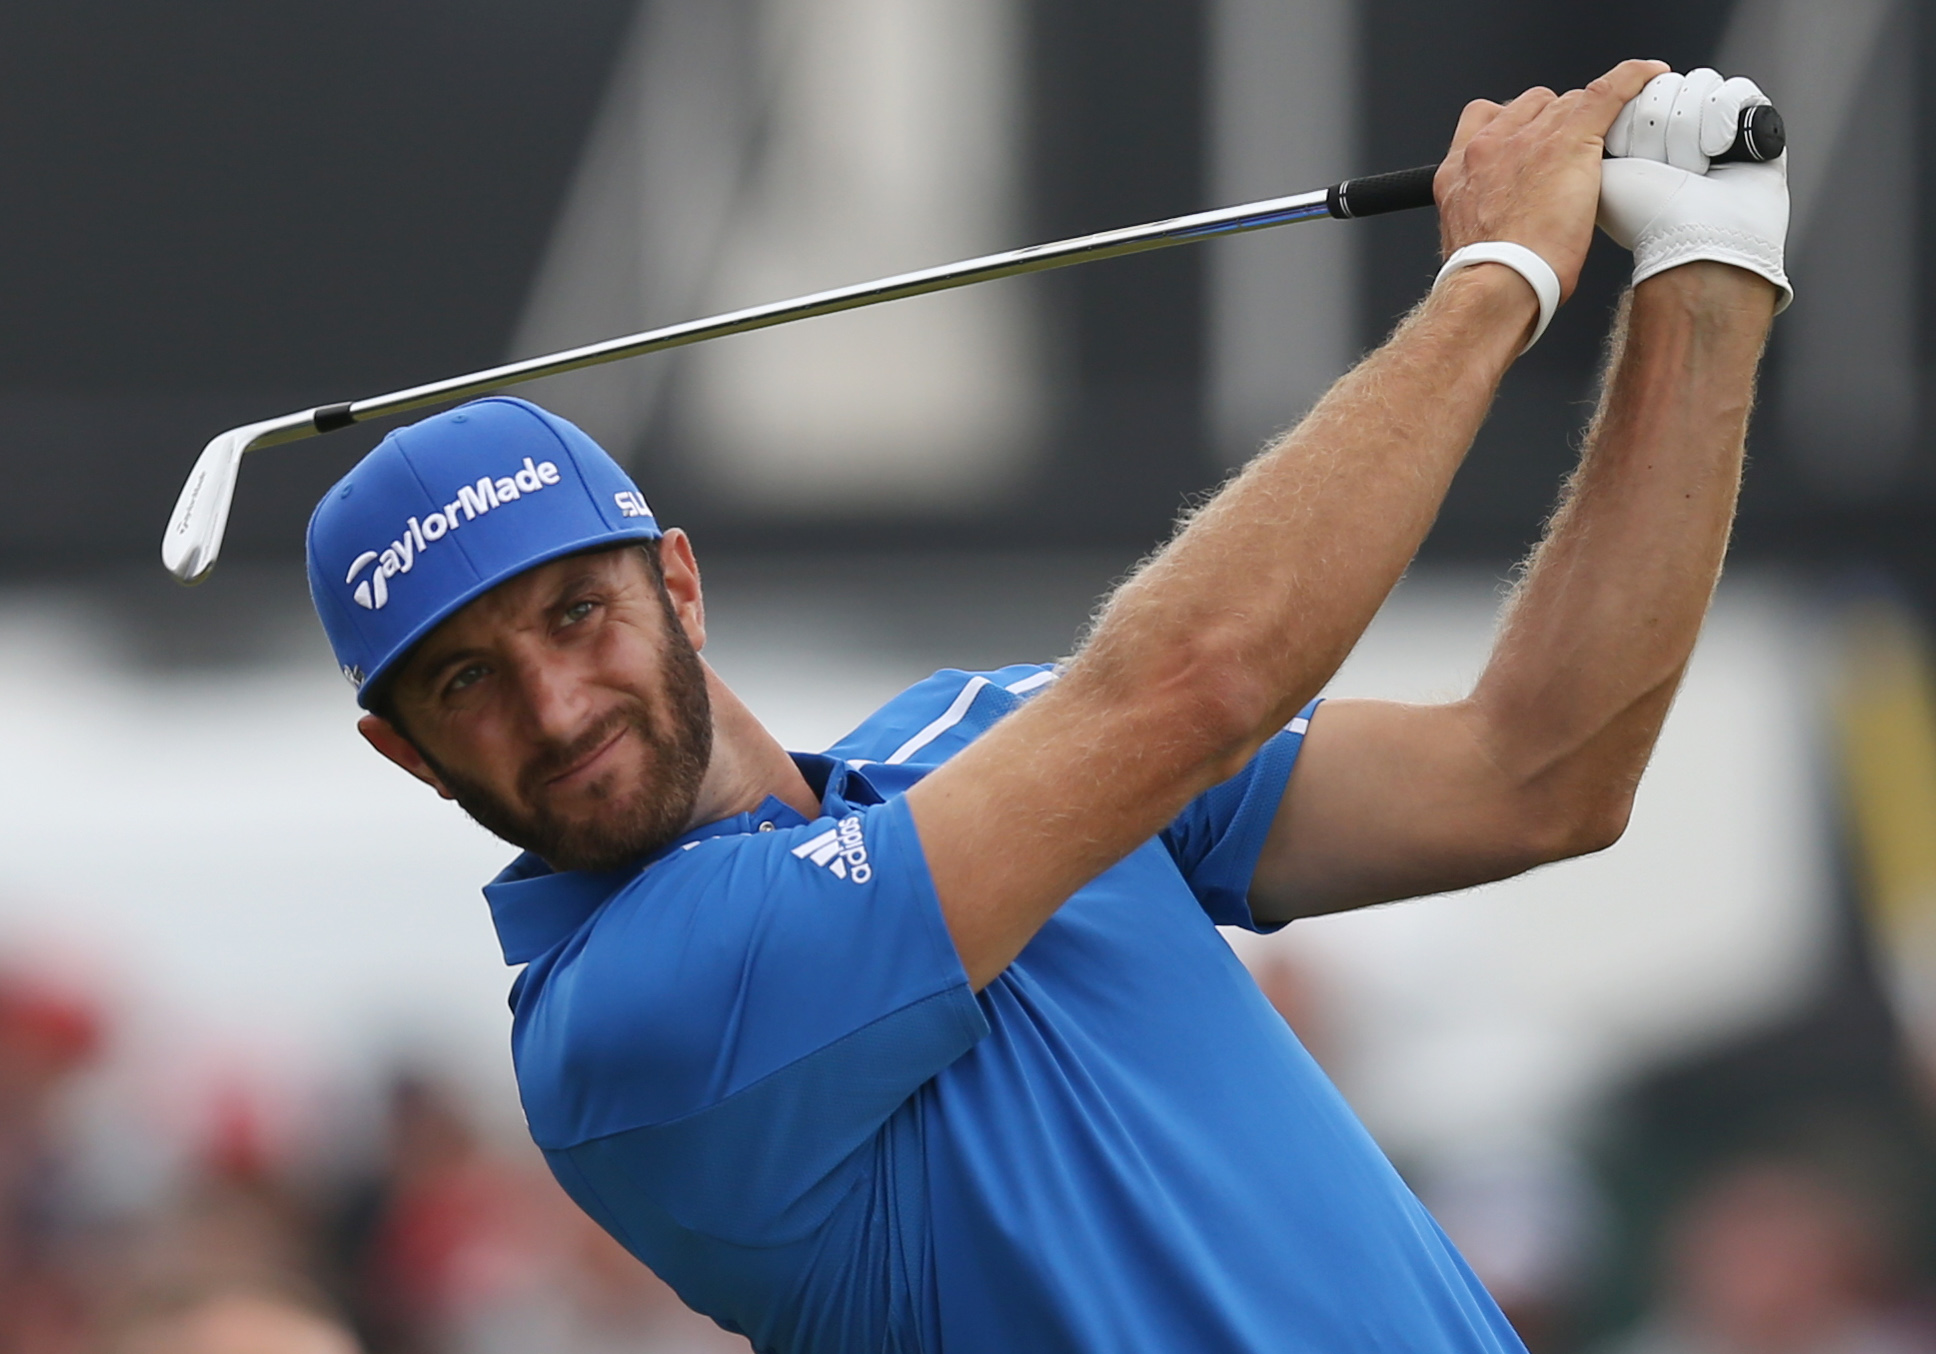 Dustin Johnson will return to golf next month at the Farmers Insurance Open.